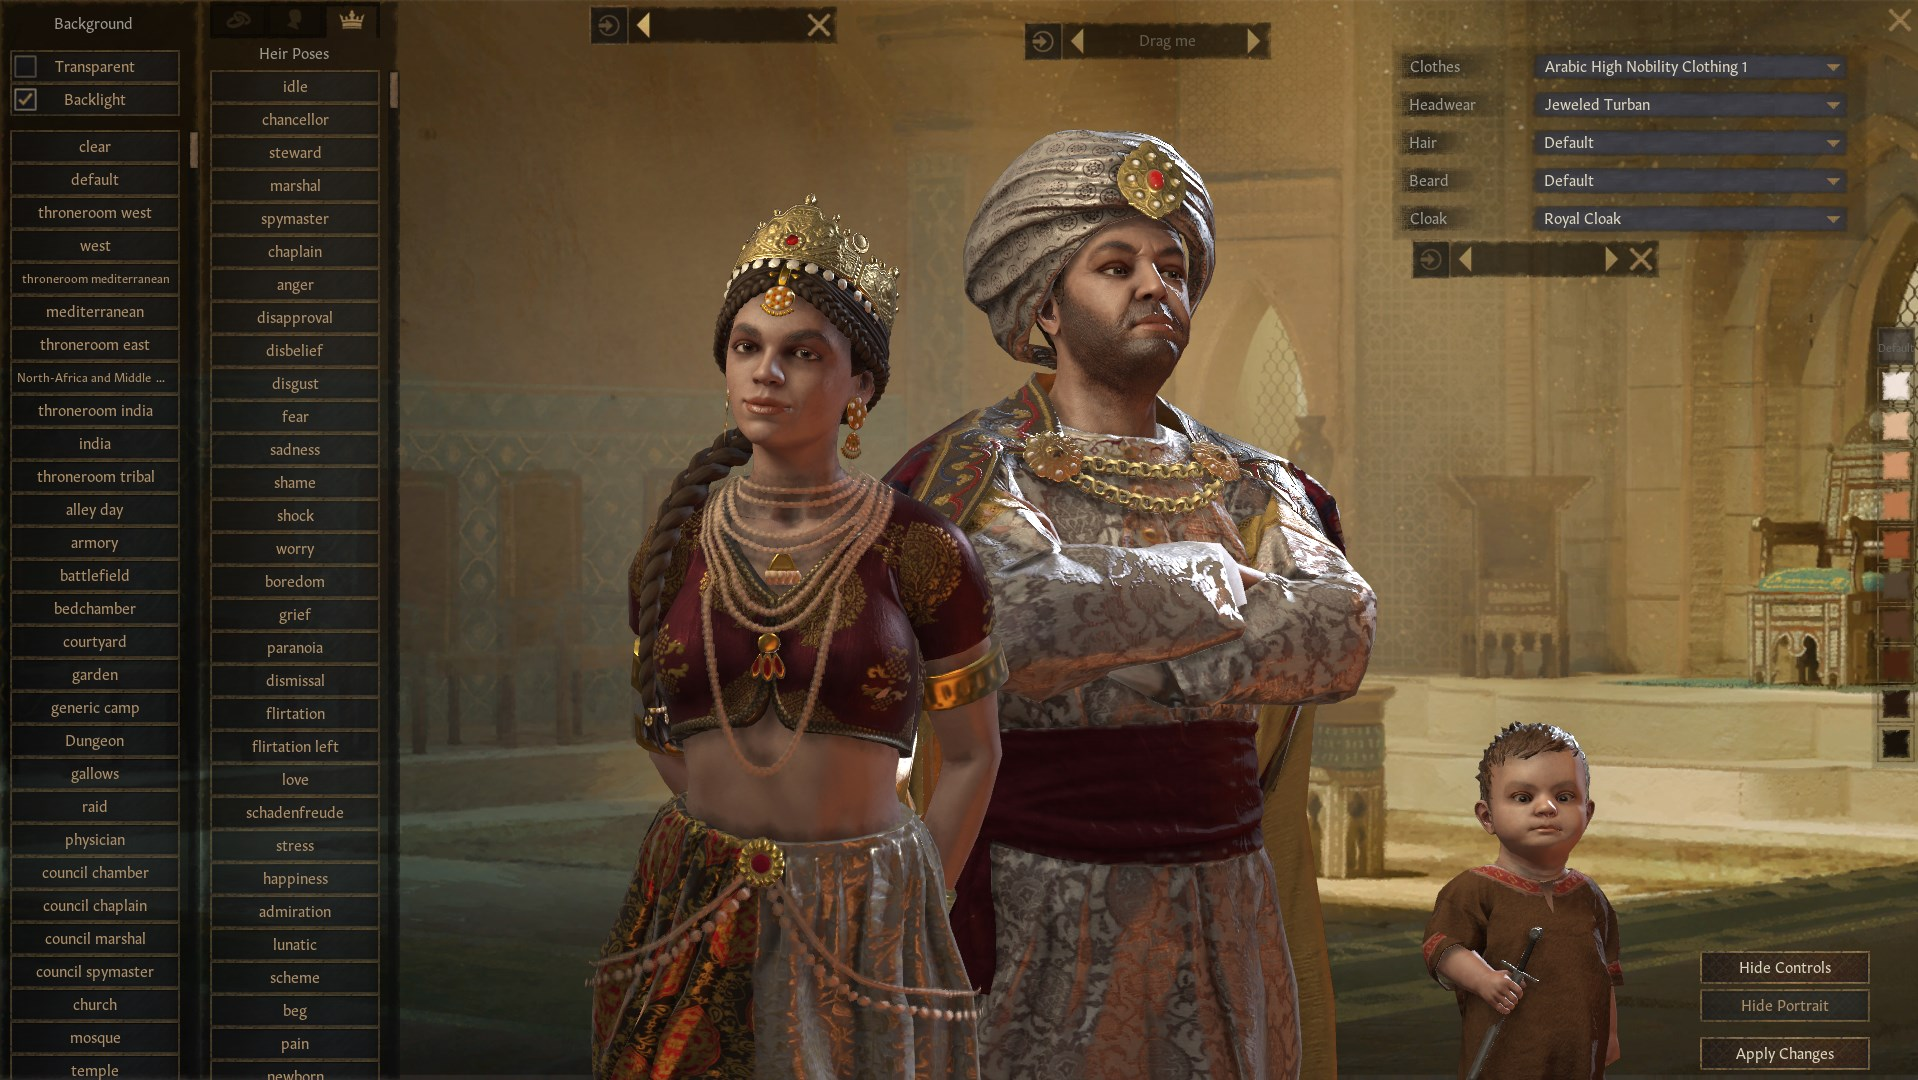 A Crusader Kings 3 screenshot showing a family posing for a screenshot. The new menu has selections for poses and the artworks background